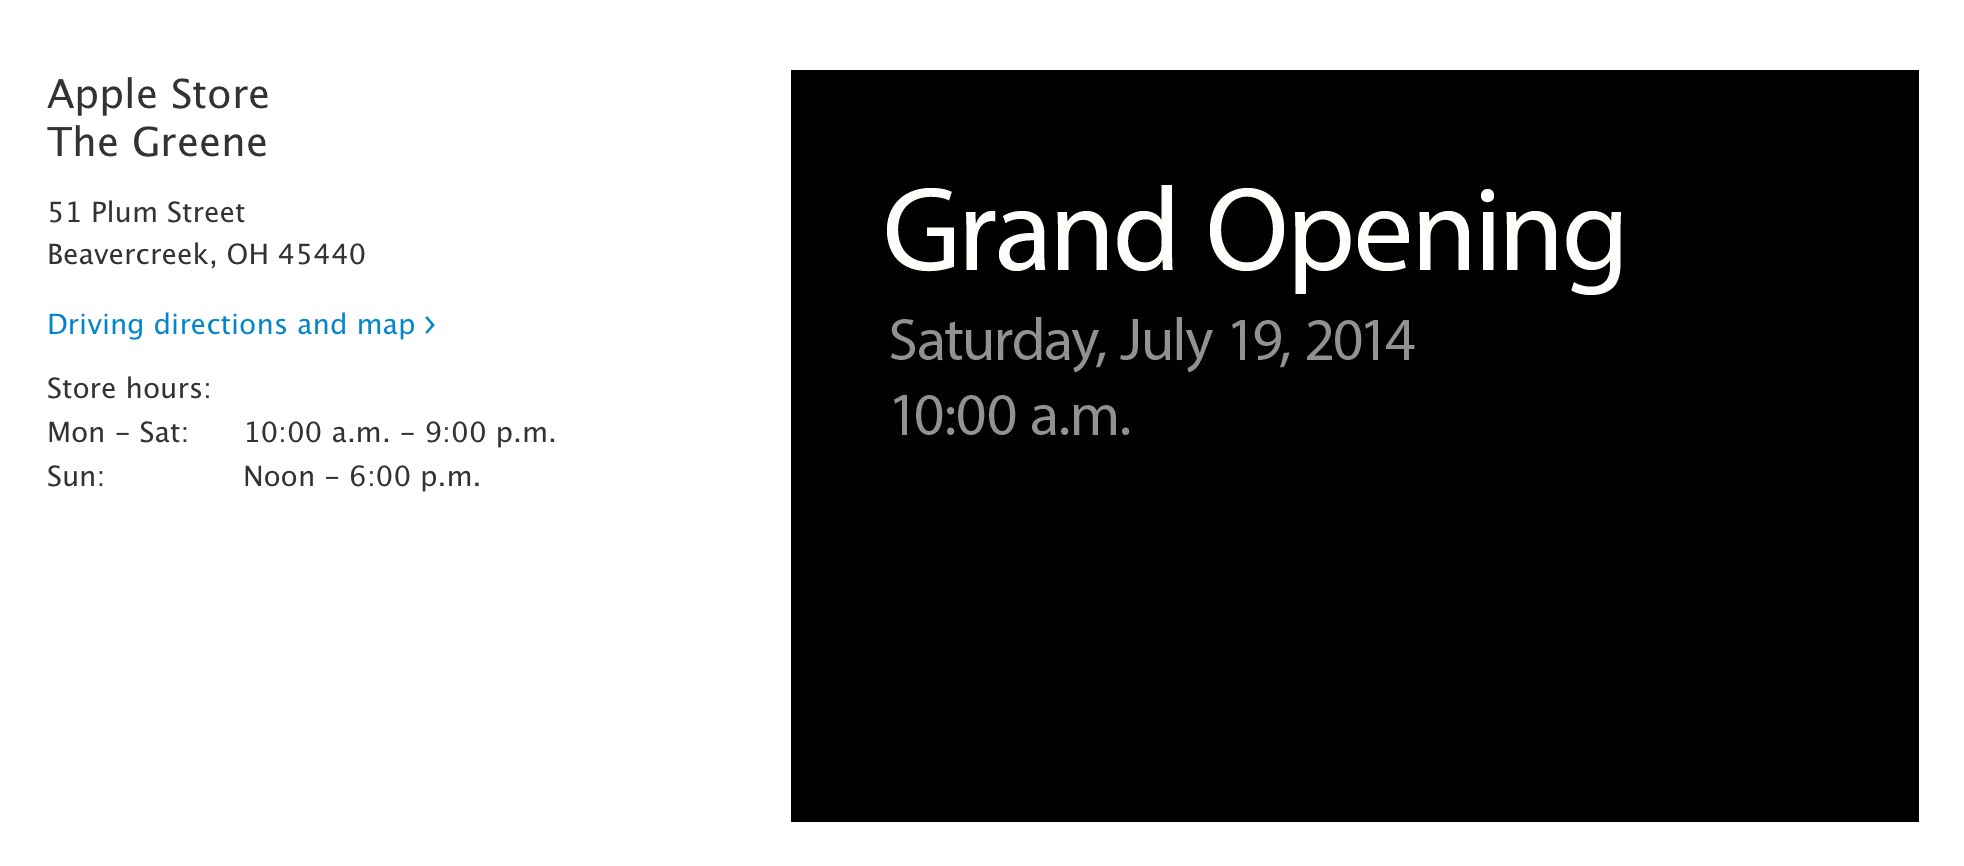 Apple is launching a new retail store in Beavercreek, Ohio this weekend